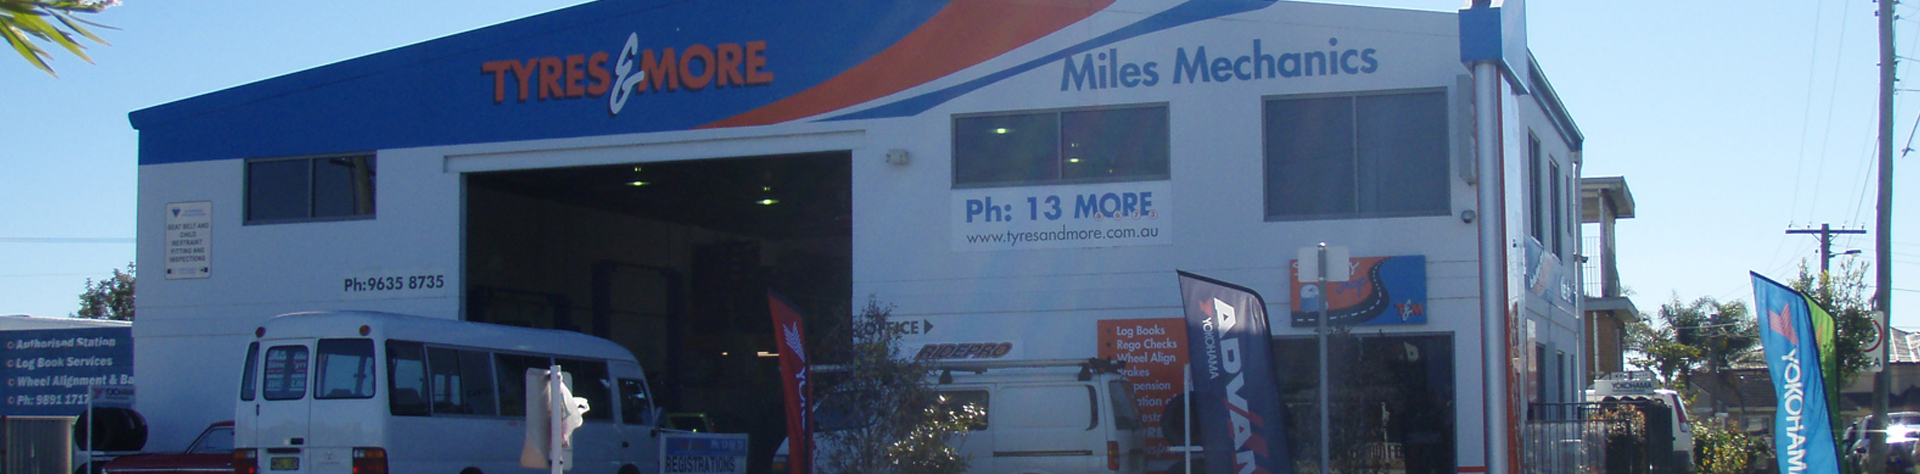 Miles Mechanics Tyres and More store image